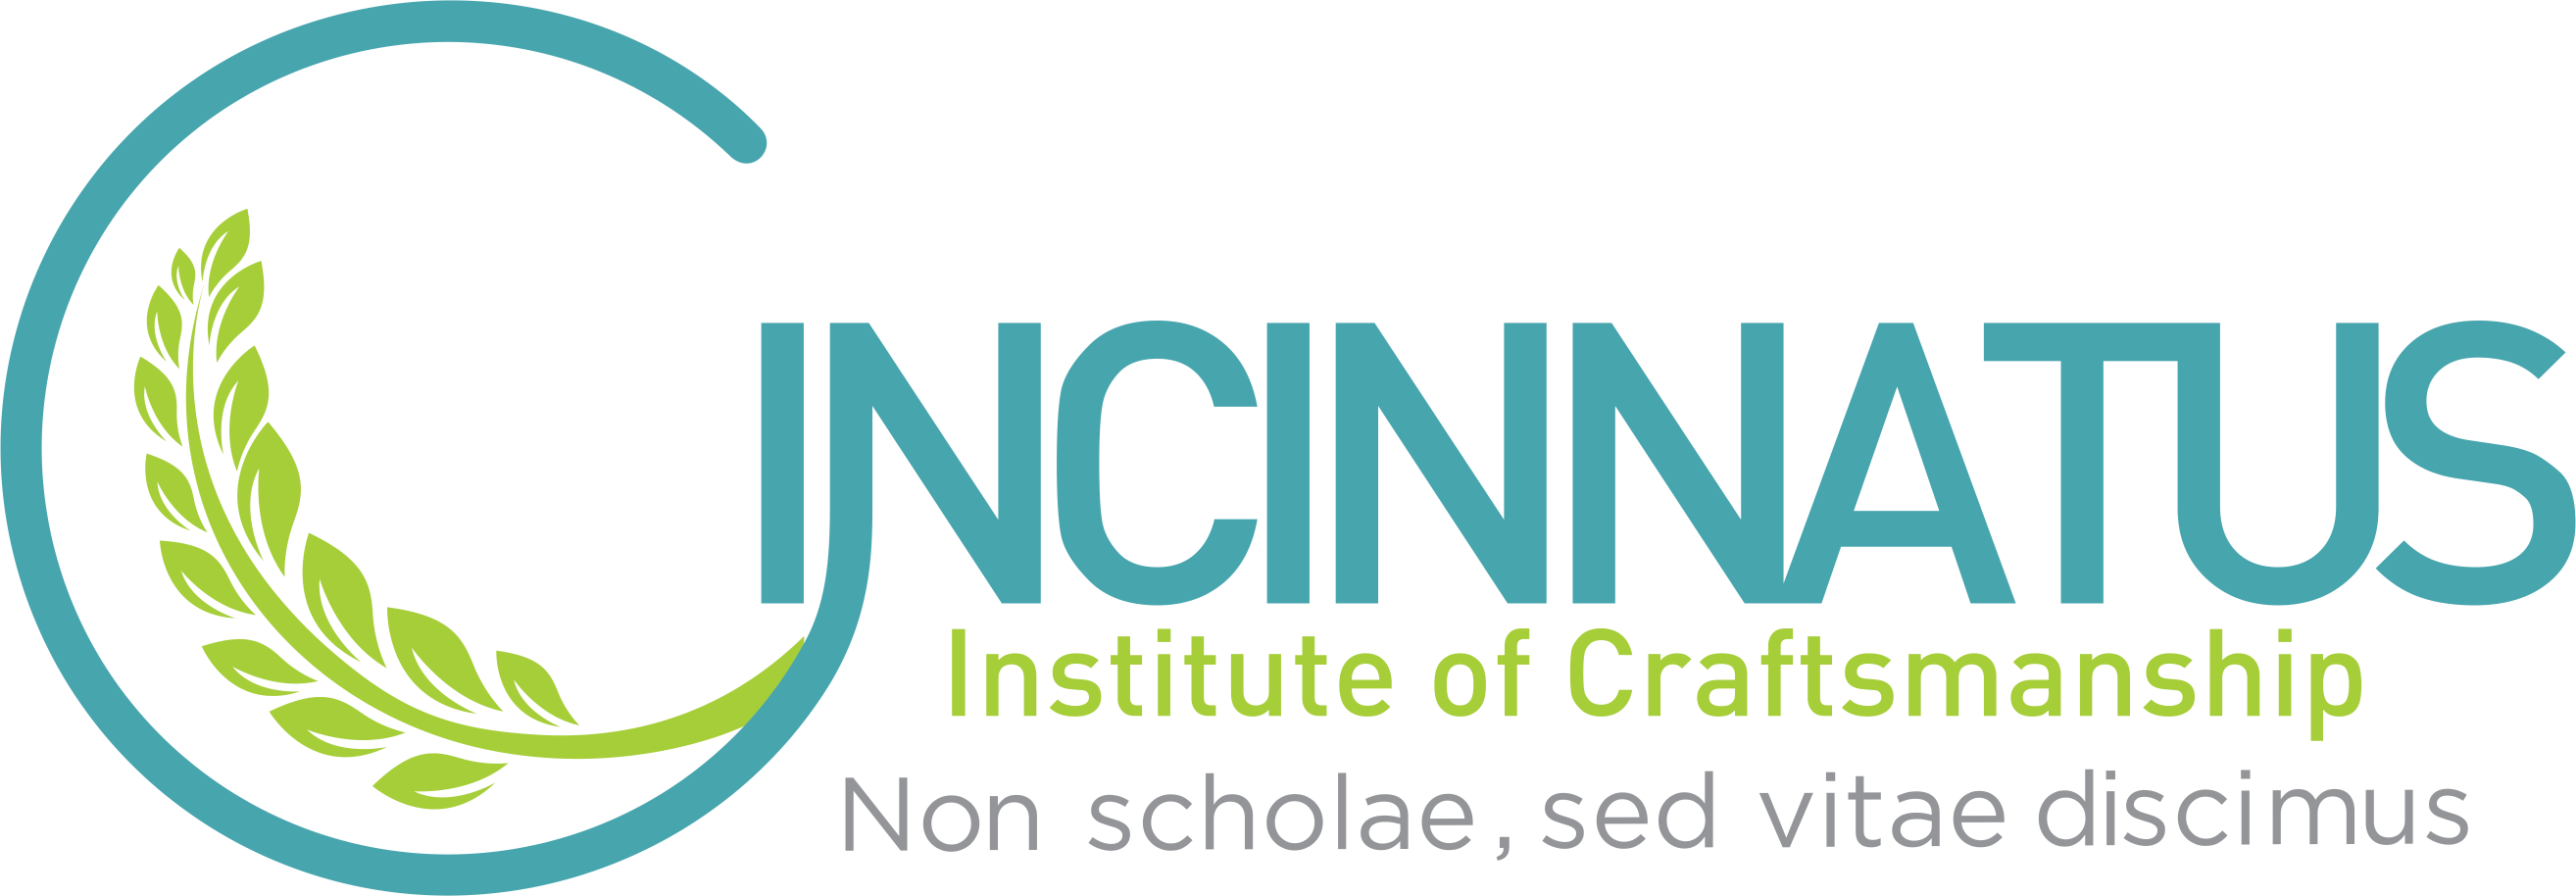 Cincinnatus Institute of Craftmanship